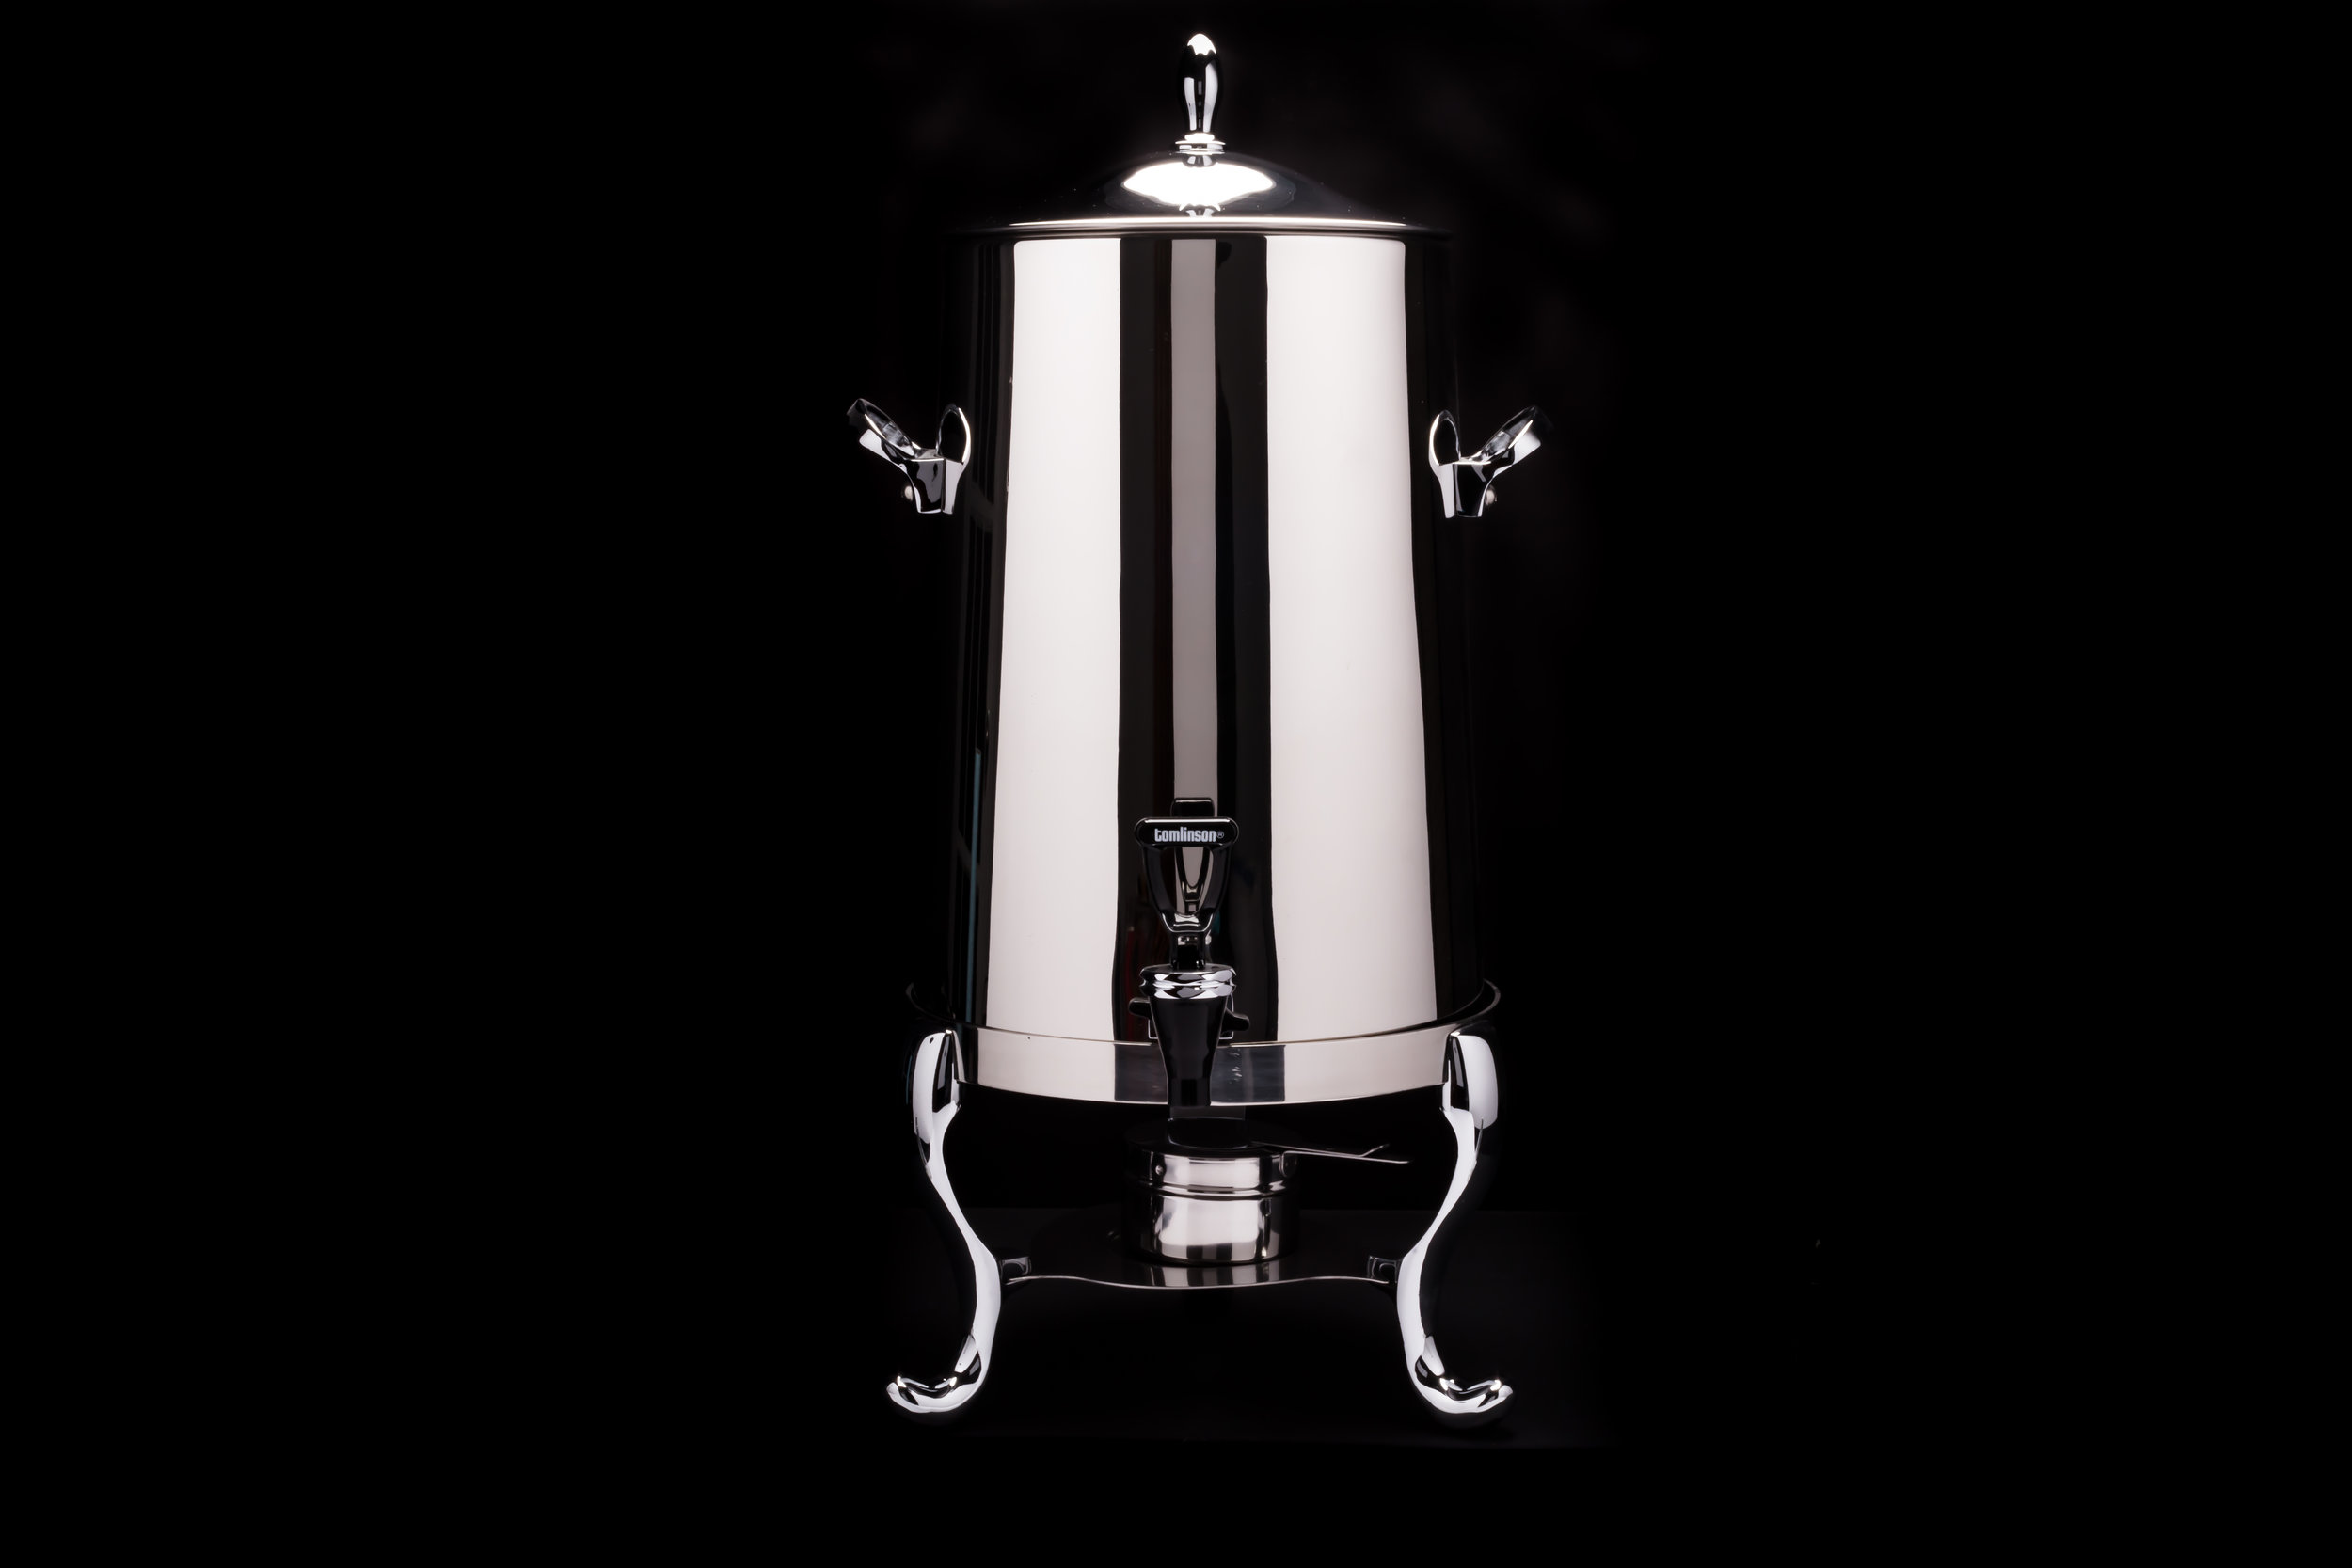 Polished Stainless Steel Samovar - 100 cup